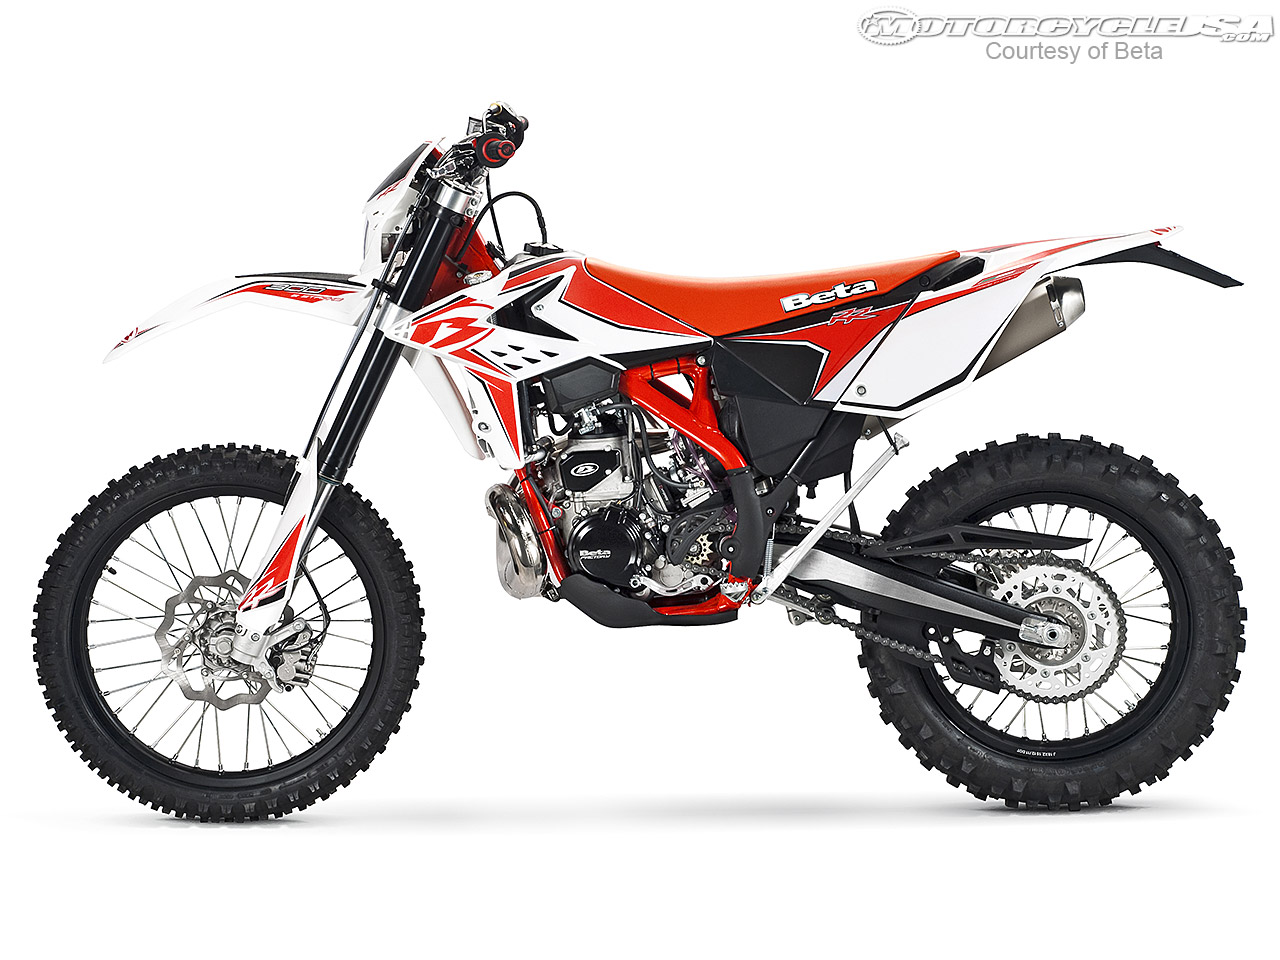 Beta Evo 300 4 Stroke 2013 images #92387